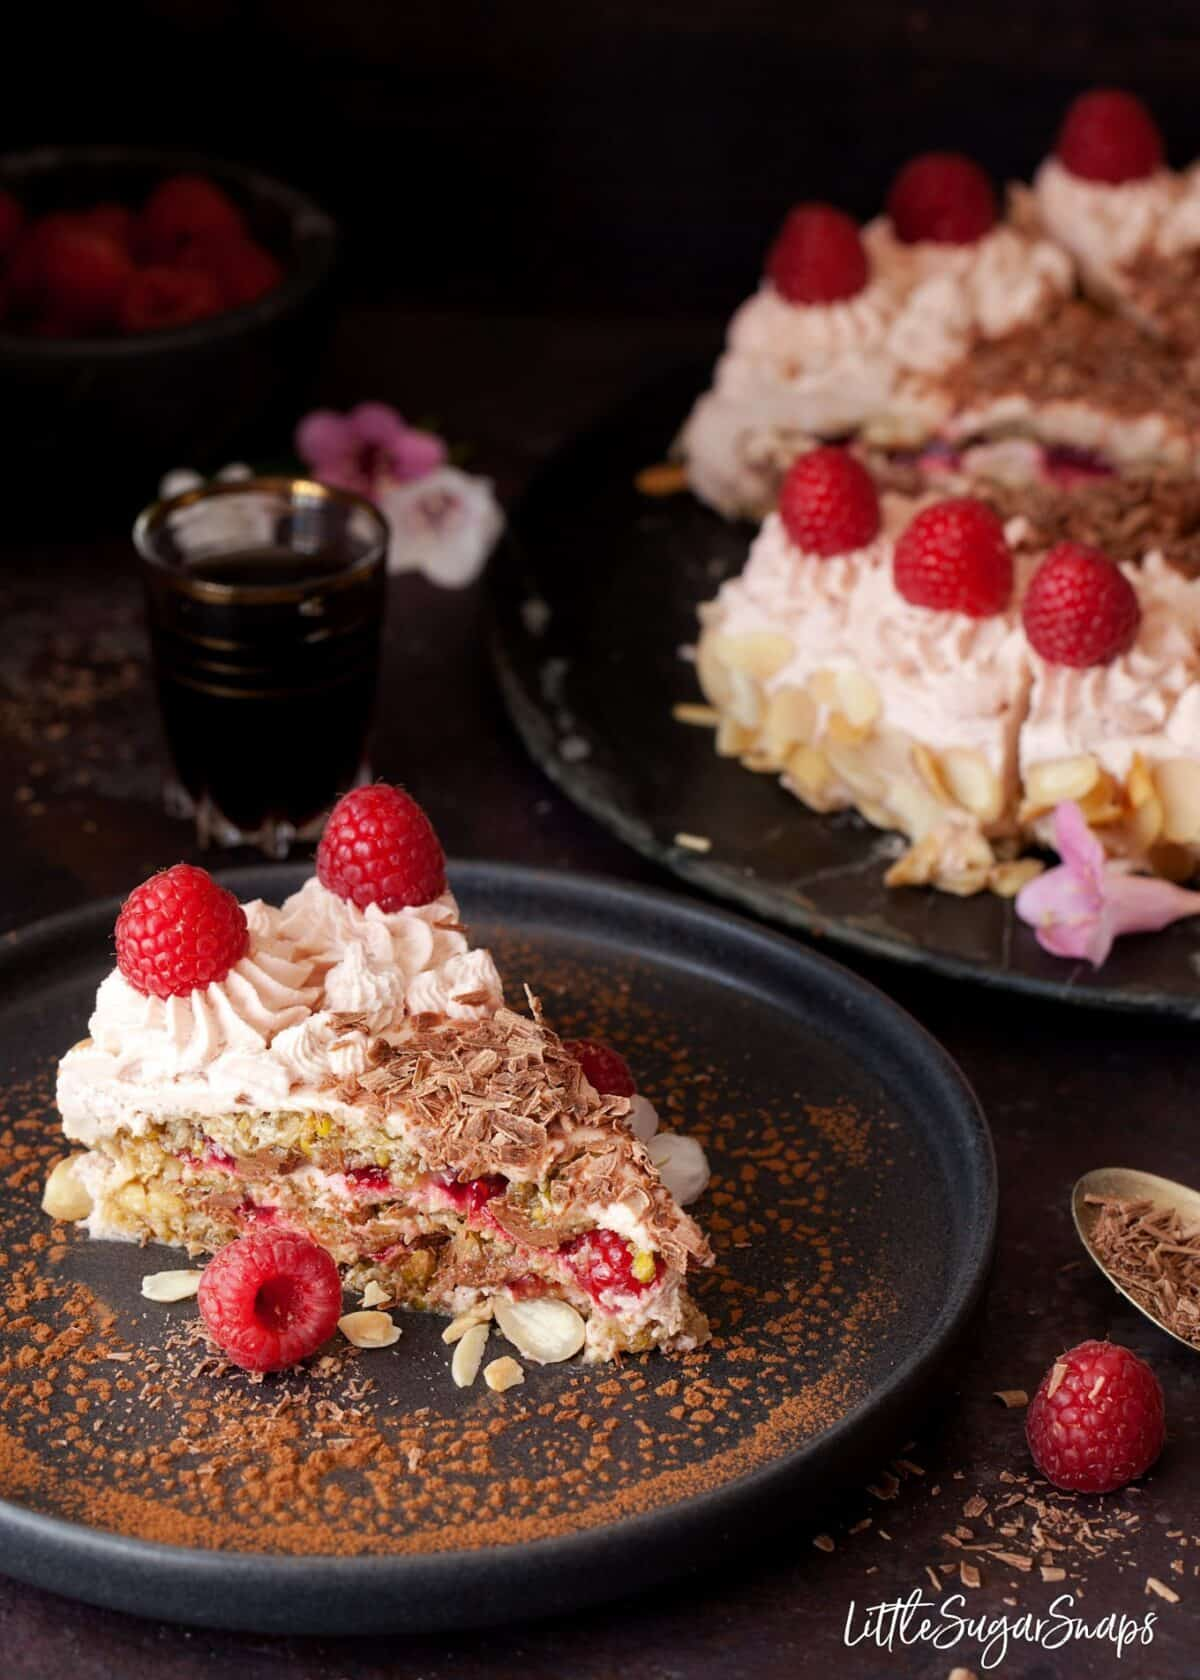 A slice of raspberry dacquoise cake with the rest of the cake behind.